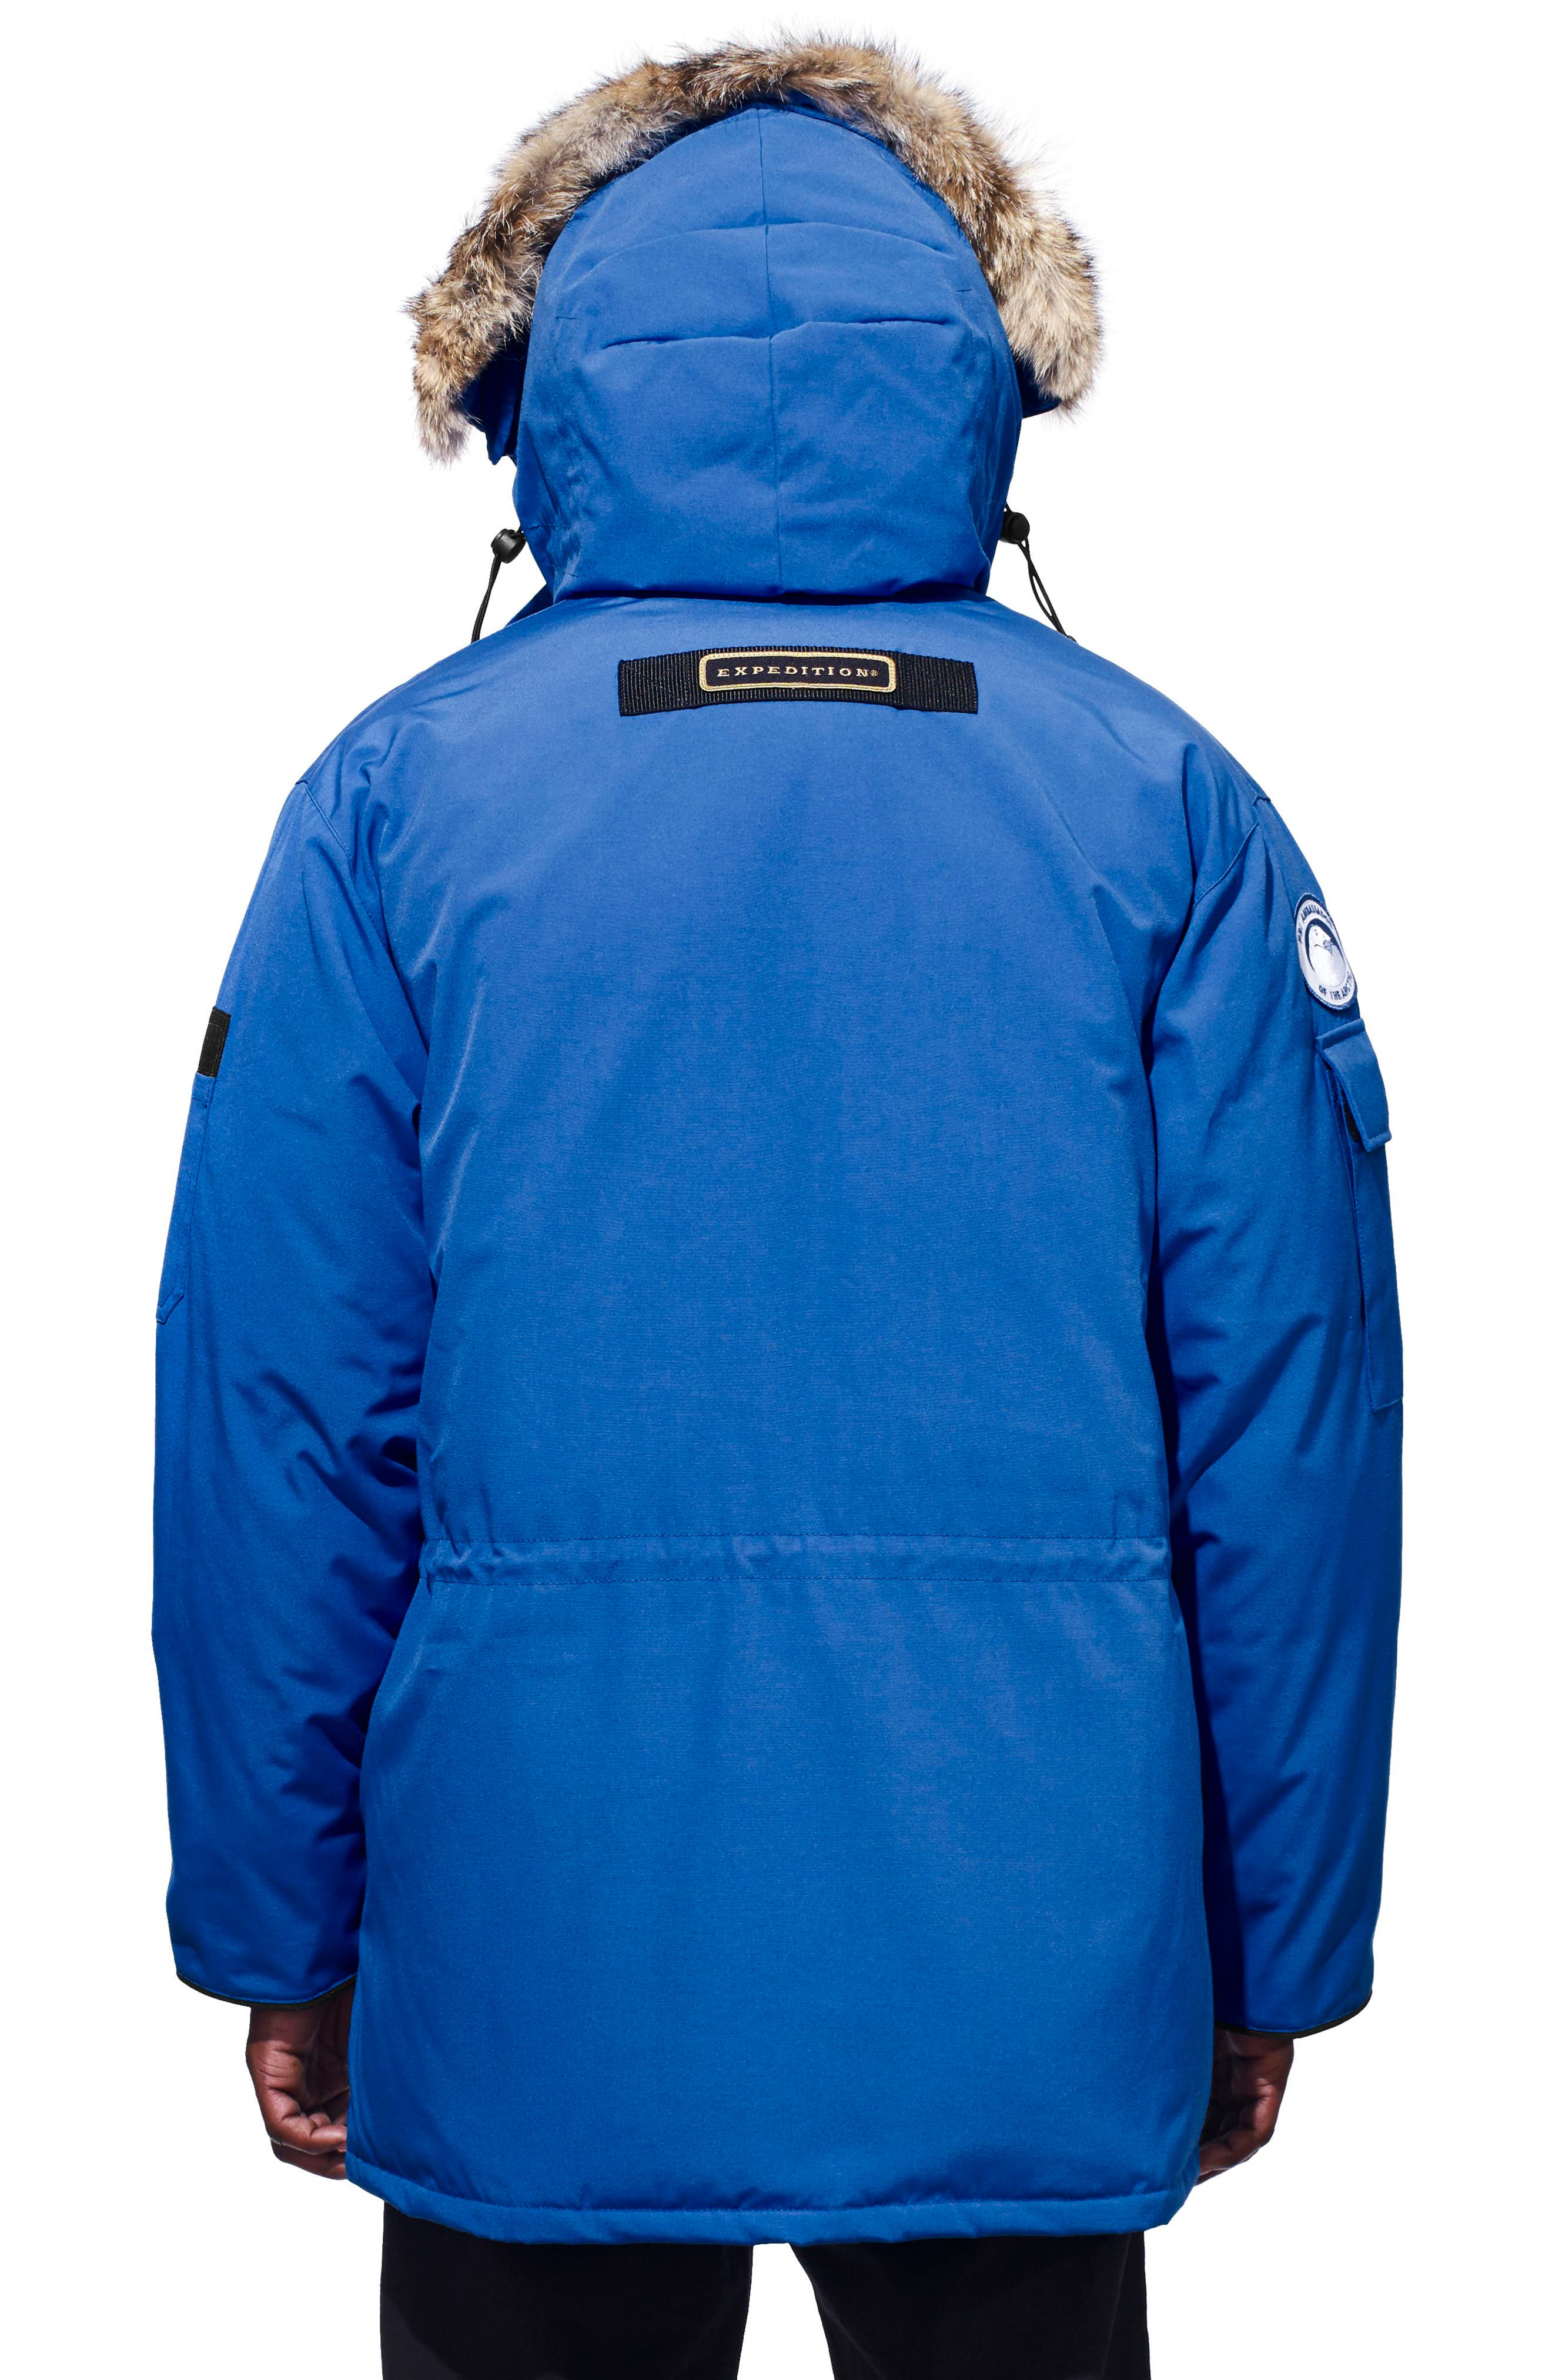 PBI Expedition Down Parka with Genuine Coyote Fur Trim,                             Alternate thumbnail 2, color,                             ROYAL PBI BLUE